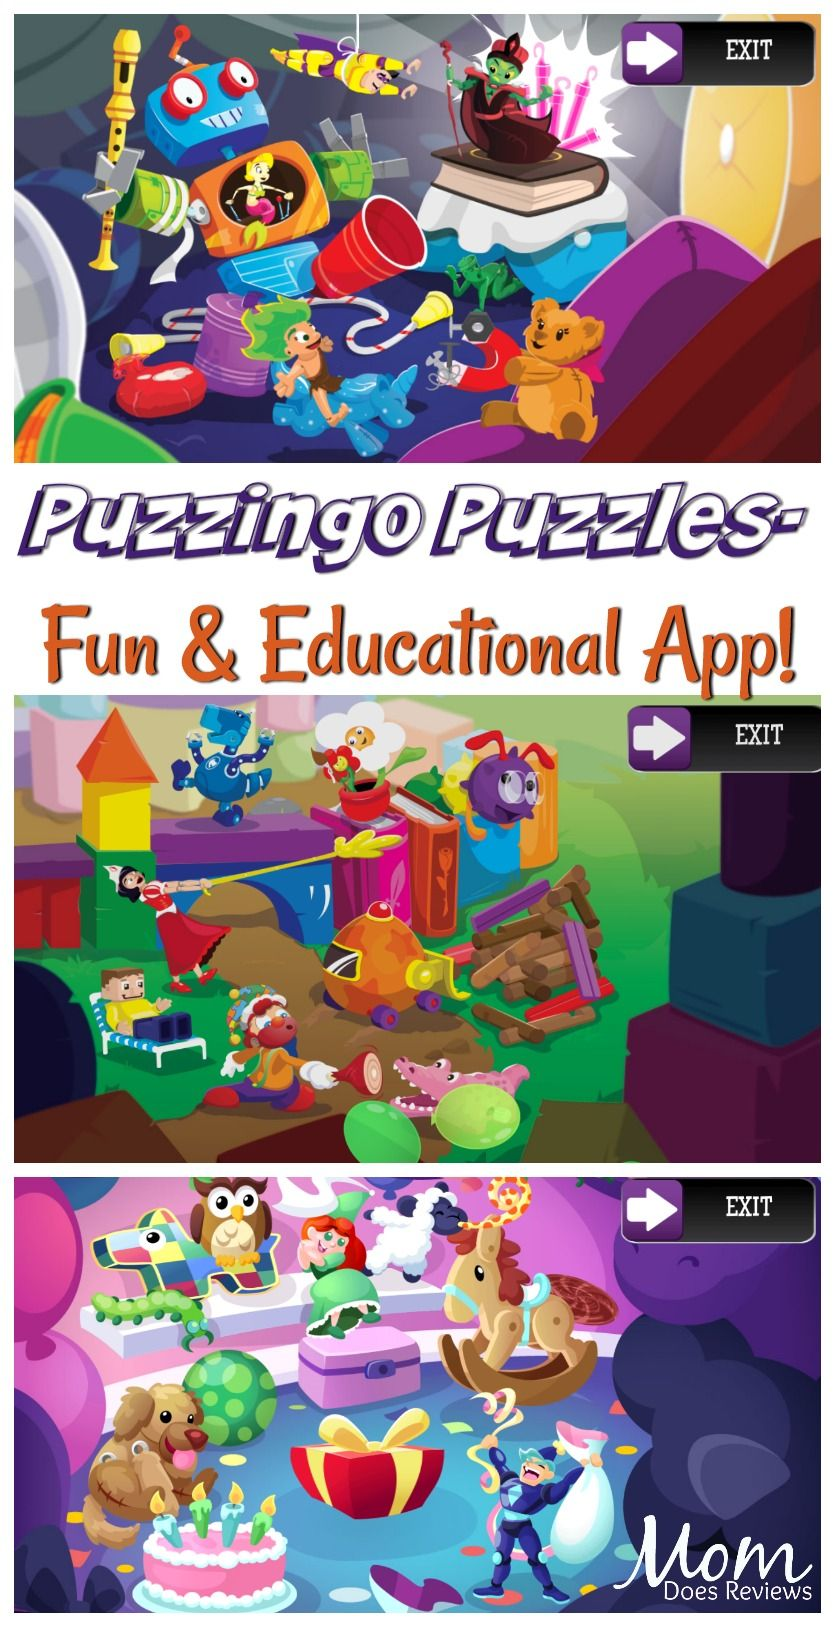 286e20c45 Puzzingo Puzzles- a Fun, Engaging and Educational App! #app #fun #puzzles # educational #learning